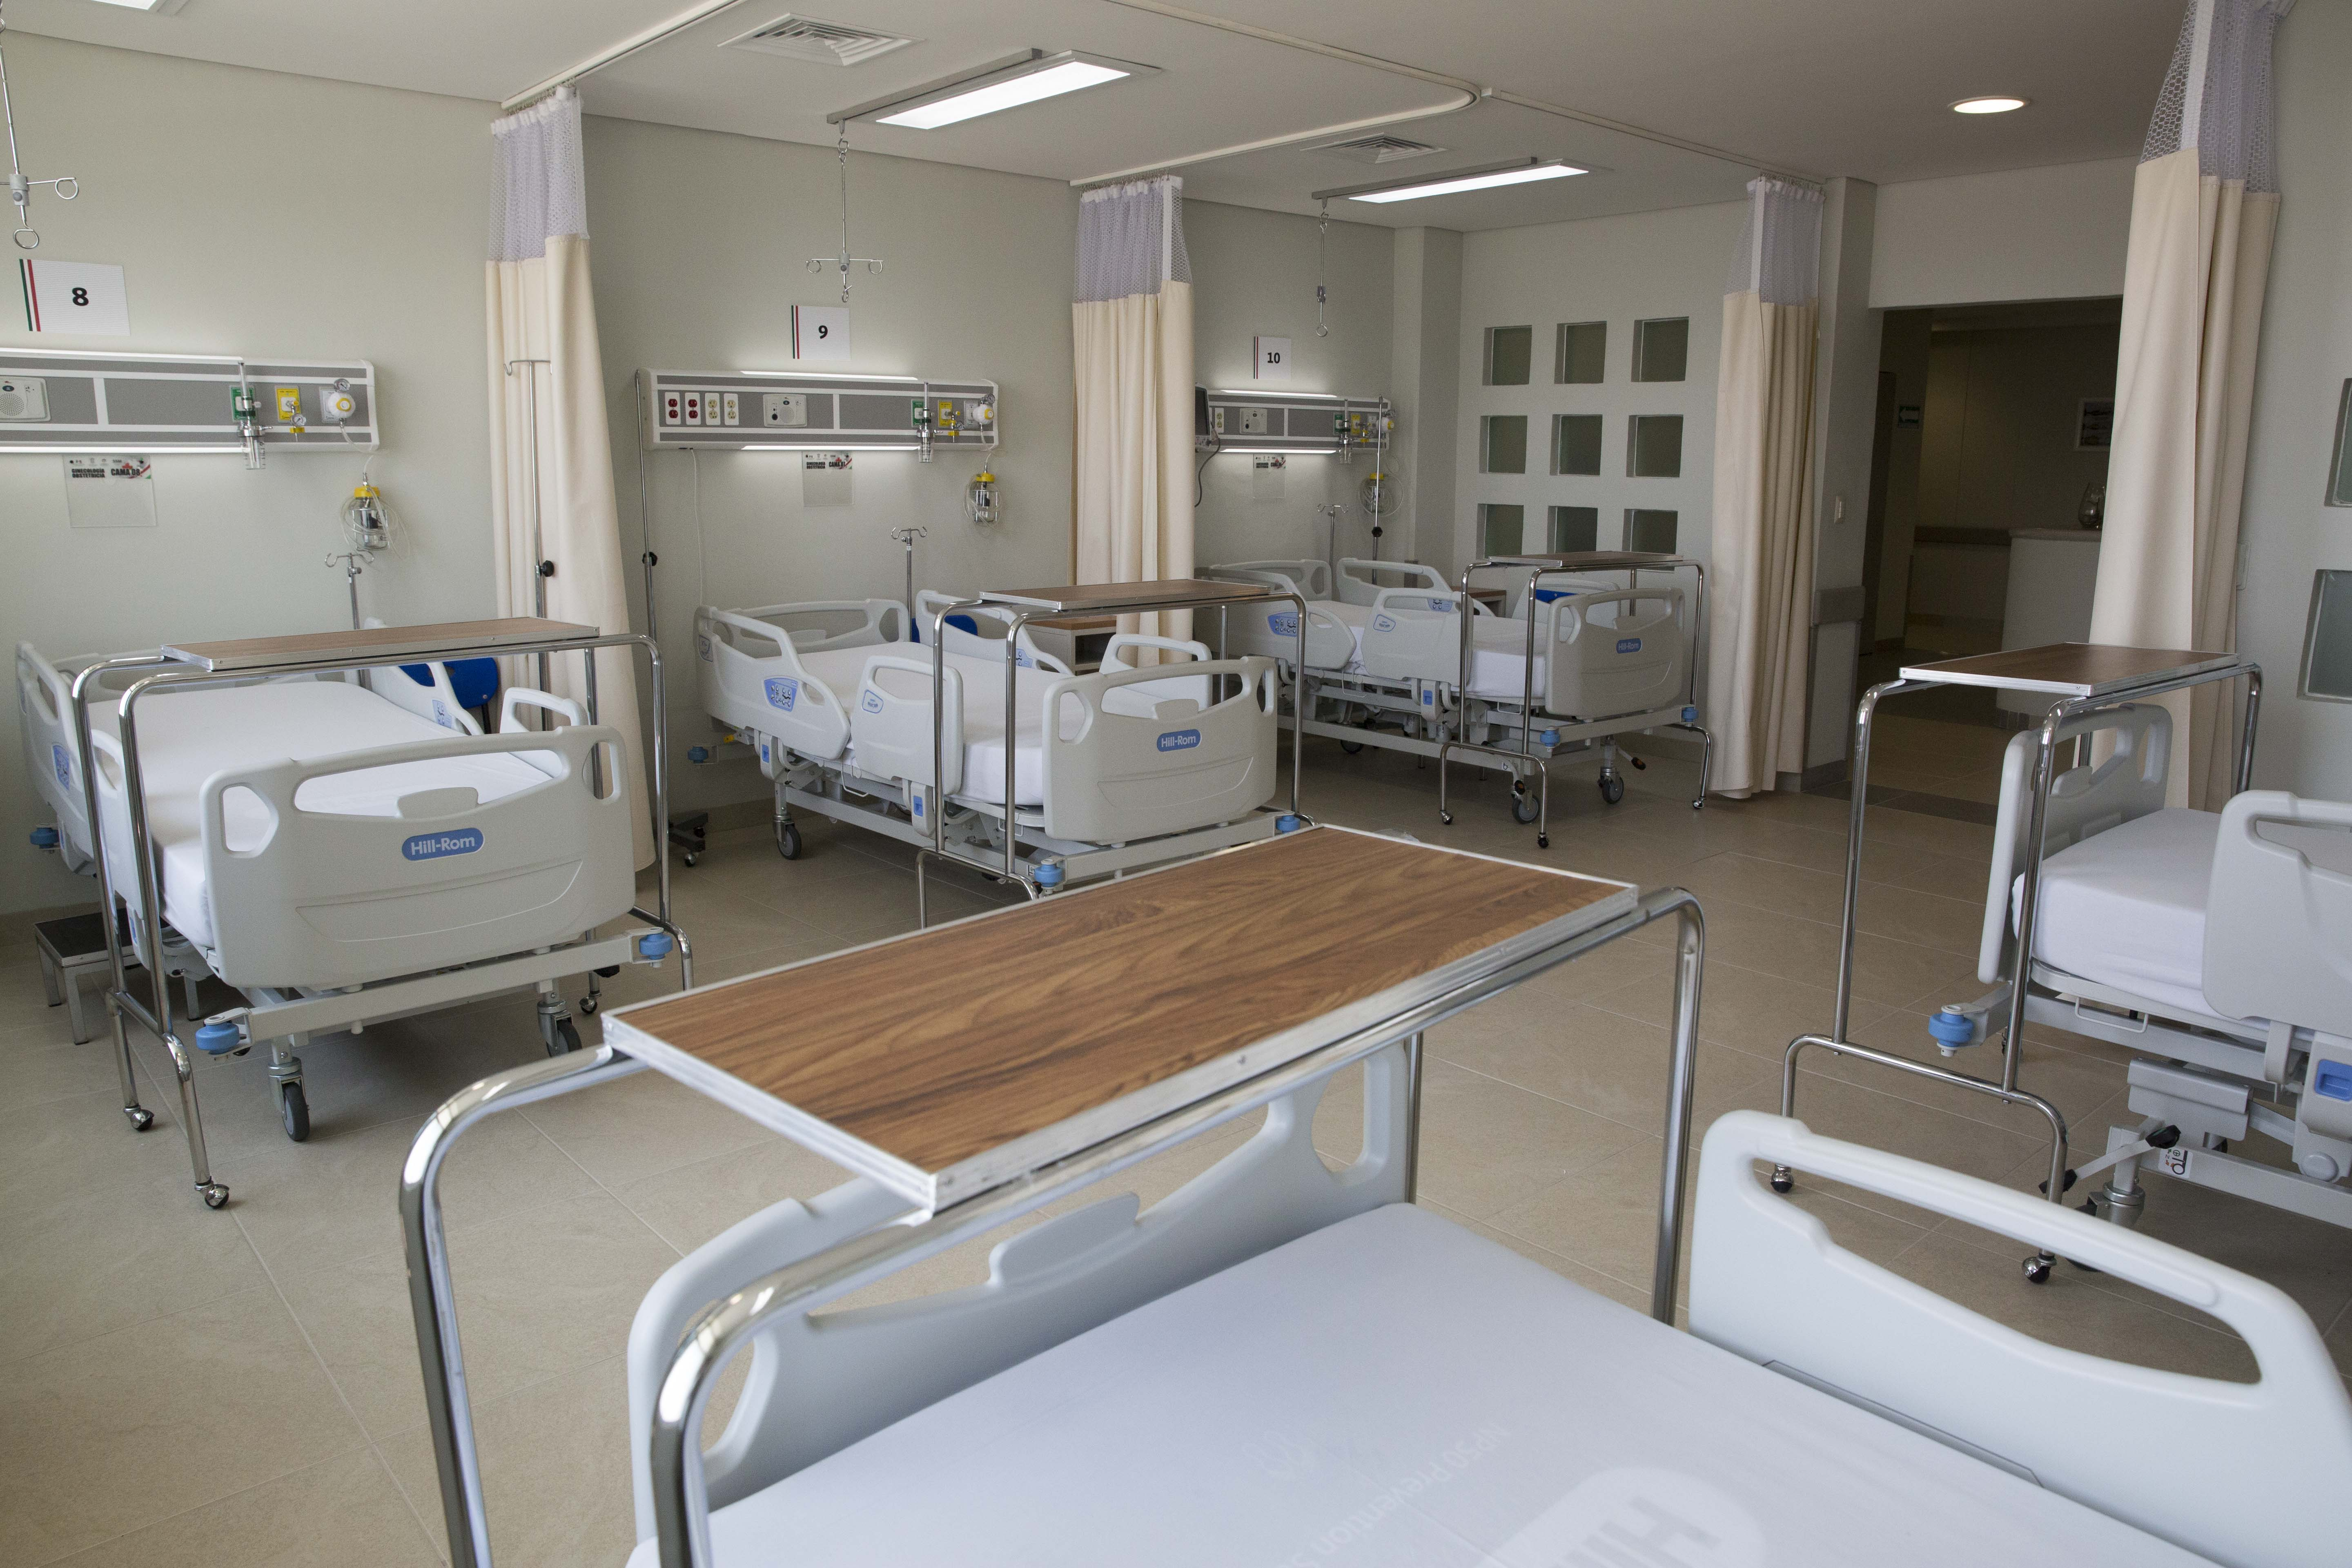 Hospital wing with several beds and equipment